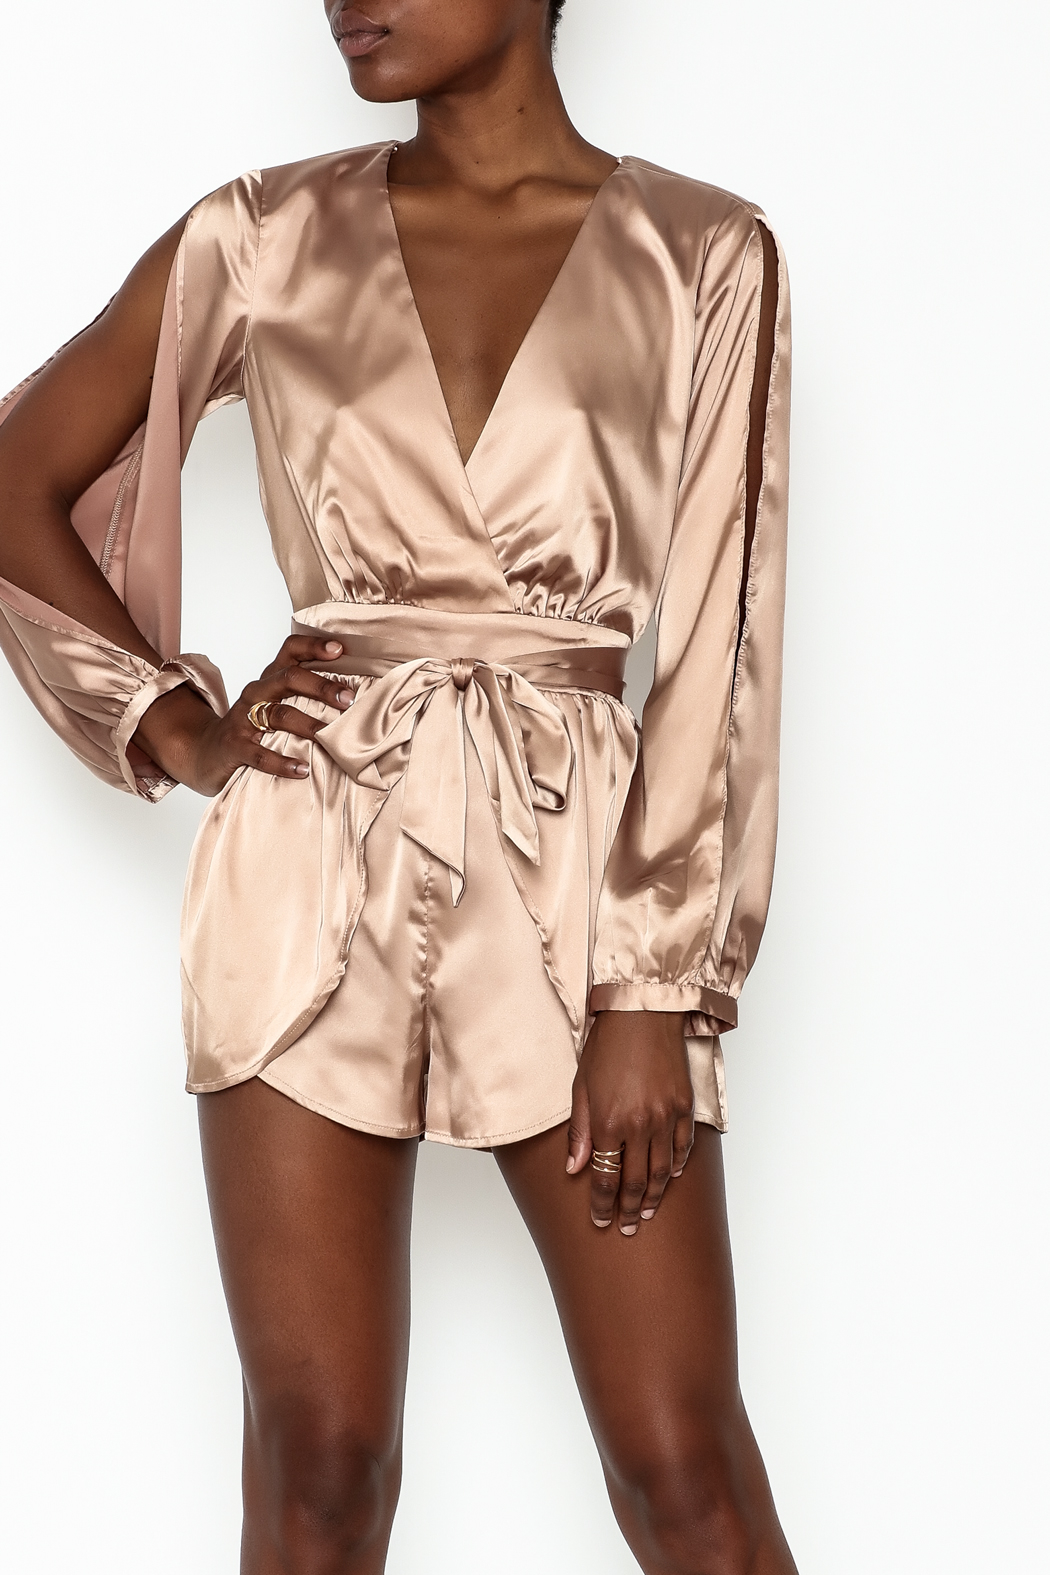 1b396f336bf6 miss avenue Gold Satin Romper from New York by Dor L Dor — Shoptiques